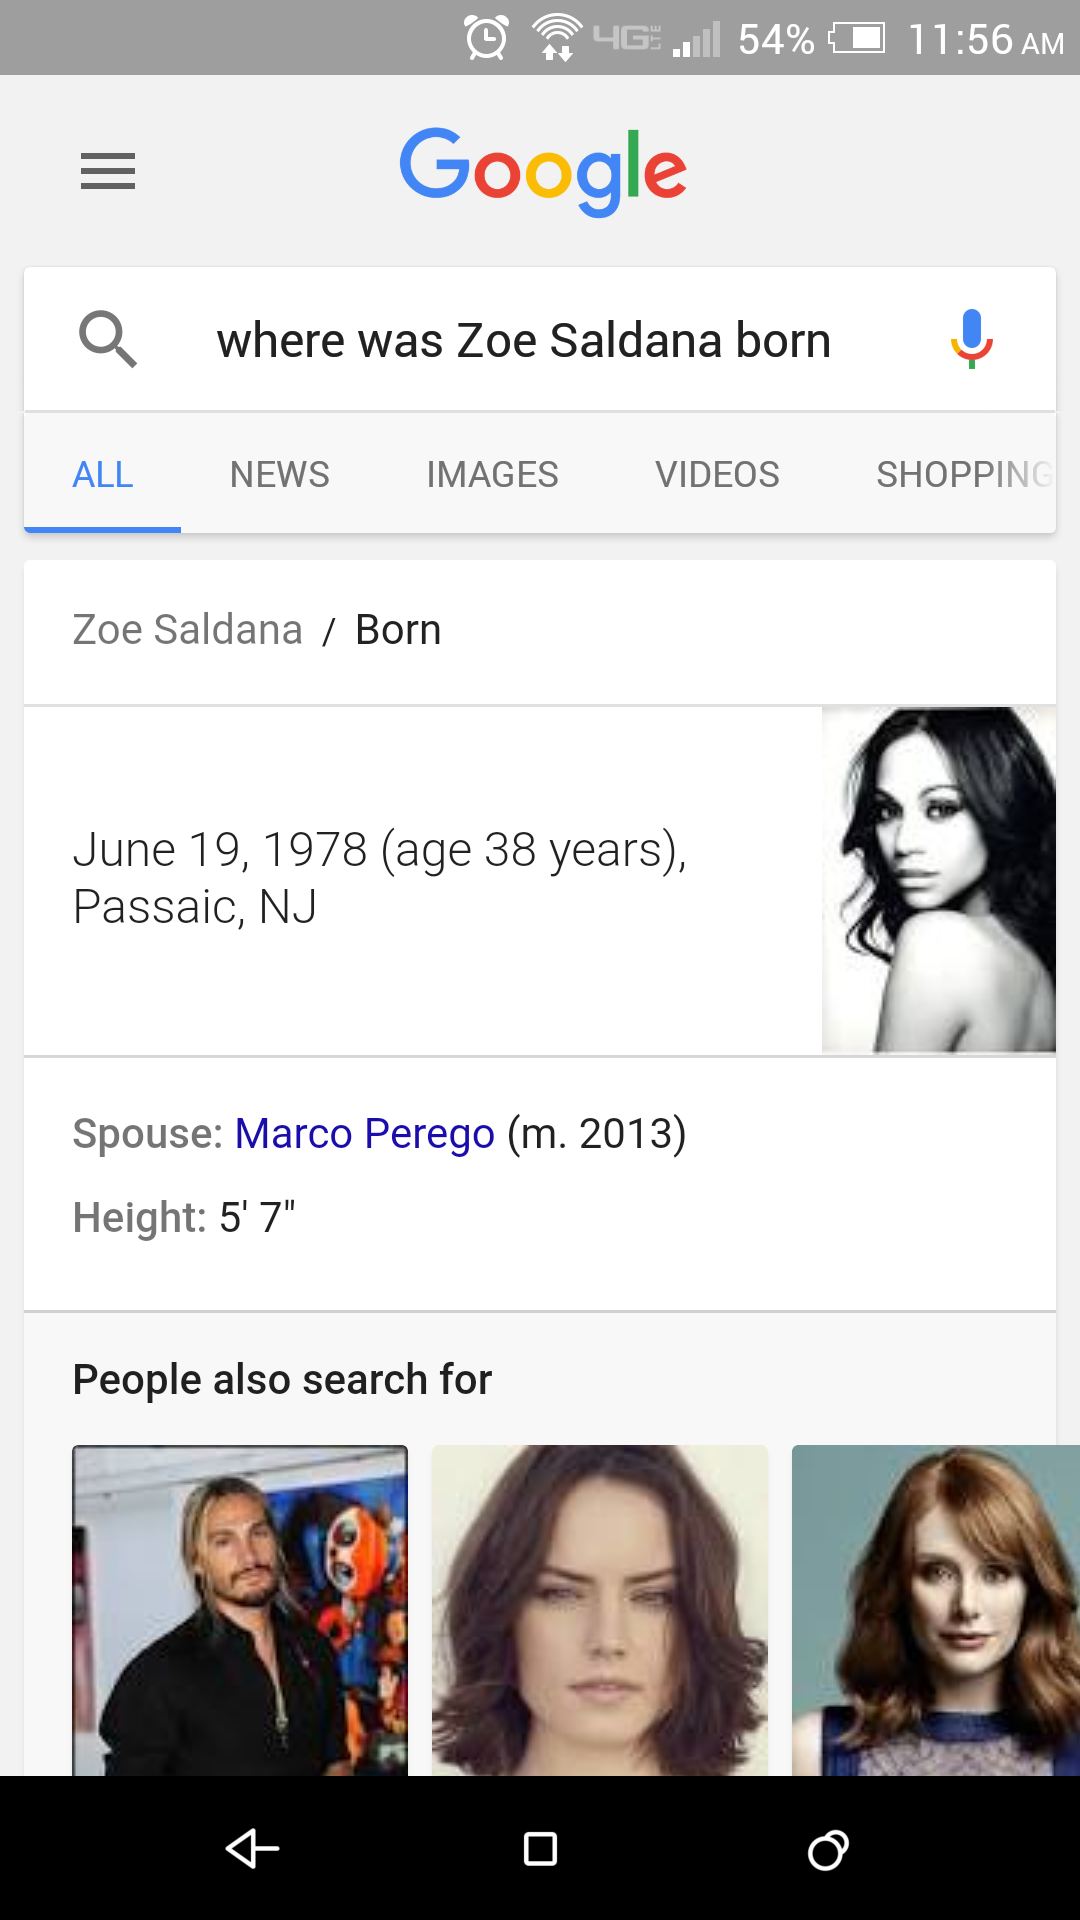 Google Voice Search Zoe Saldana birthplace query